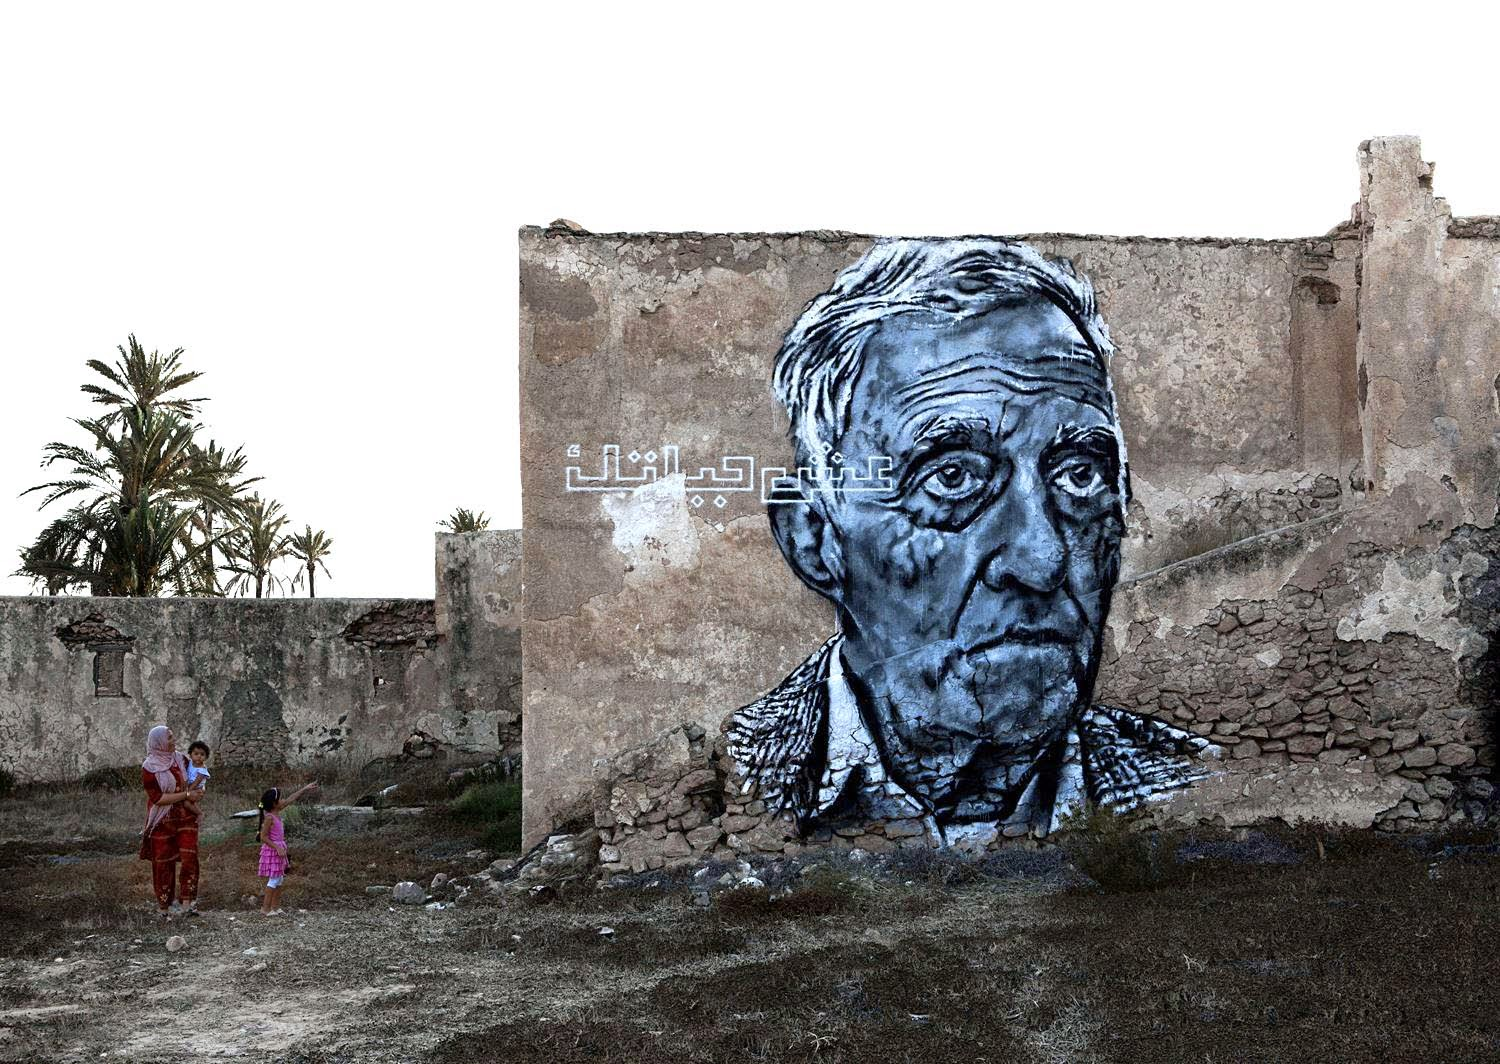 Ecb also stopped by the island of Djerba in Tunisia to paint in the city of Erriadh for the Djerbahood project.